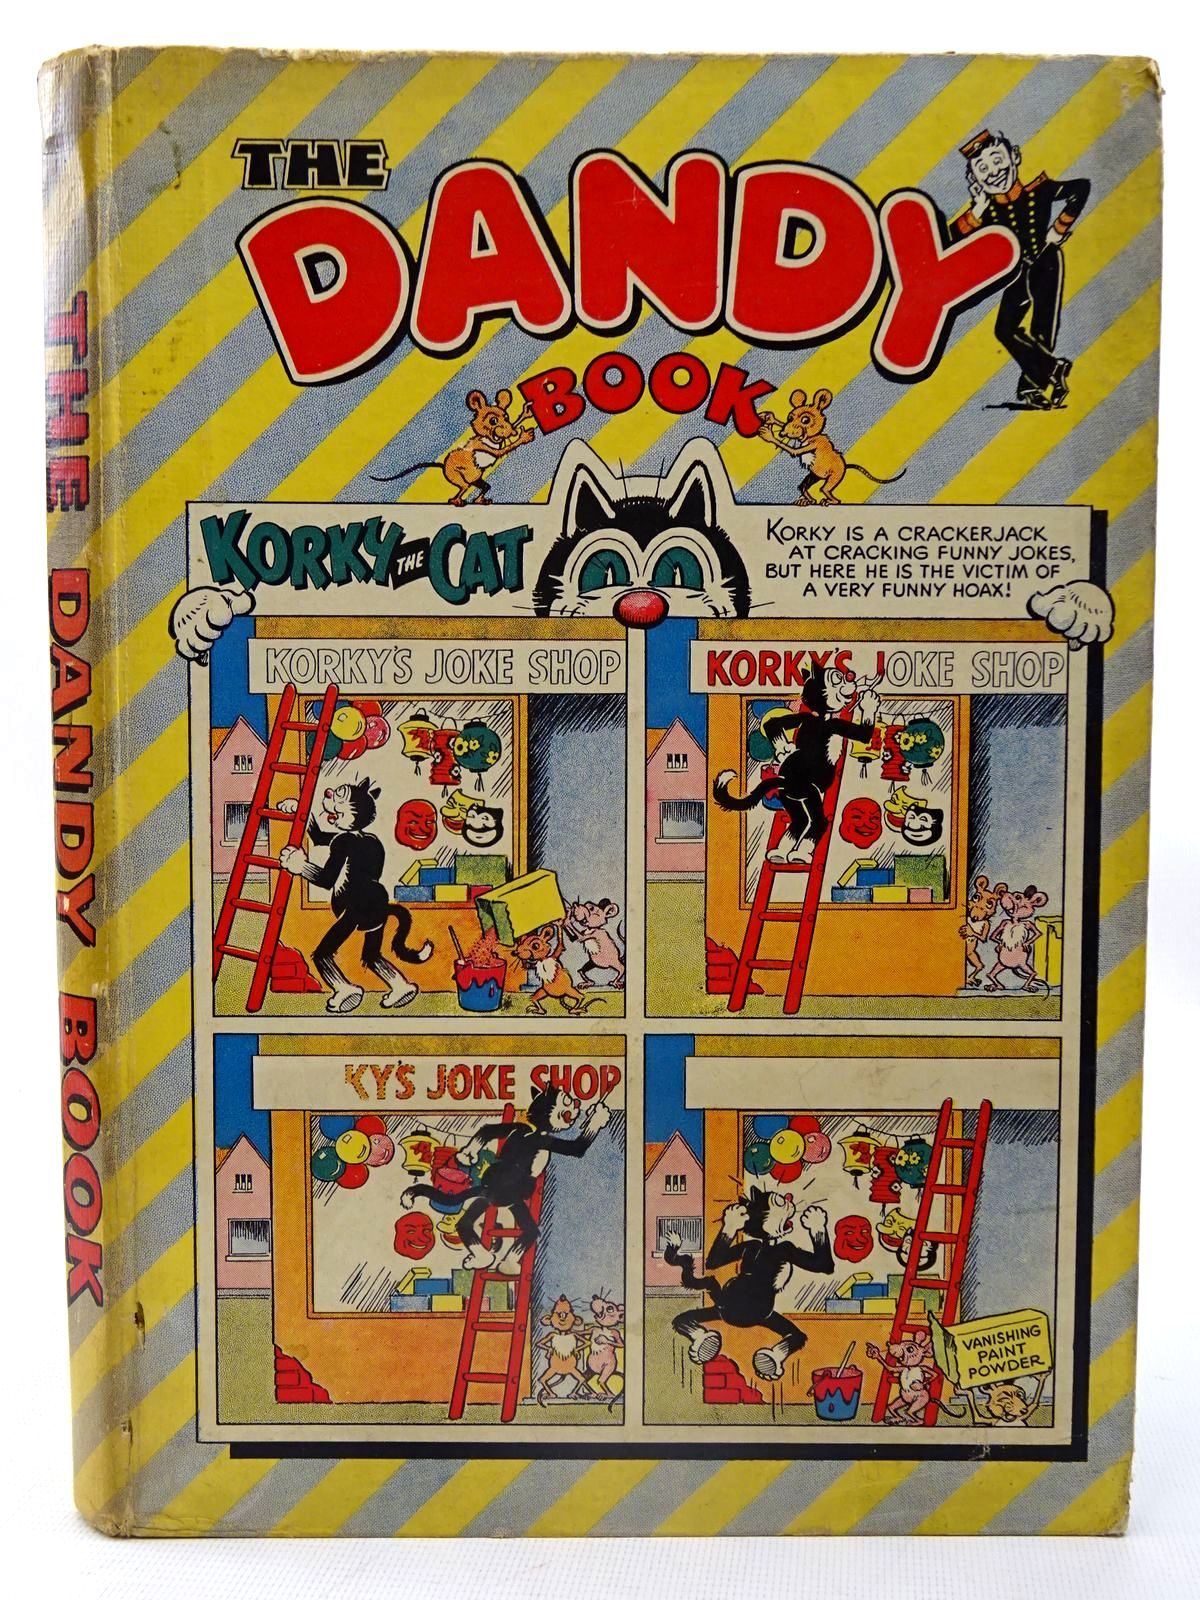 Photo of THE DANDY BOOK 1956 published by D.C. Thomson & Co Ltd. (STOCK CODE: 2126218)  for sale by Stella & Rose's Books